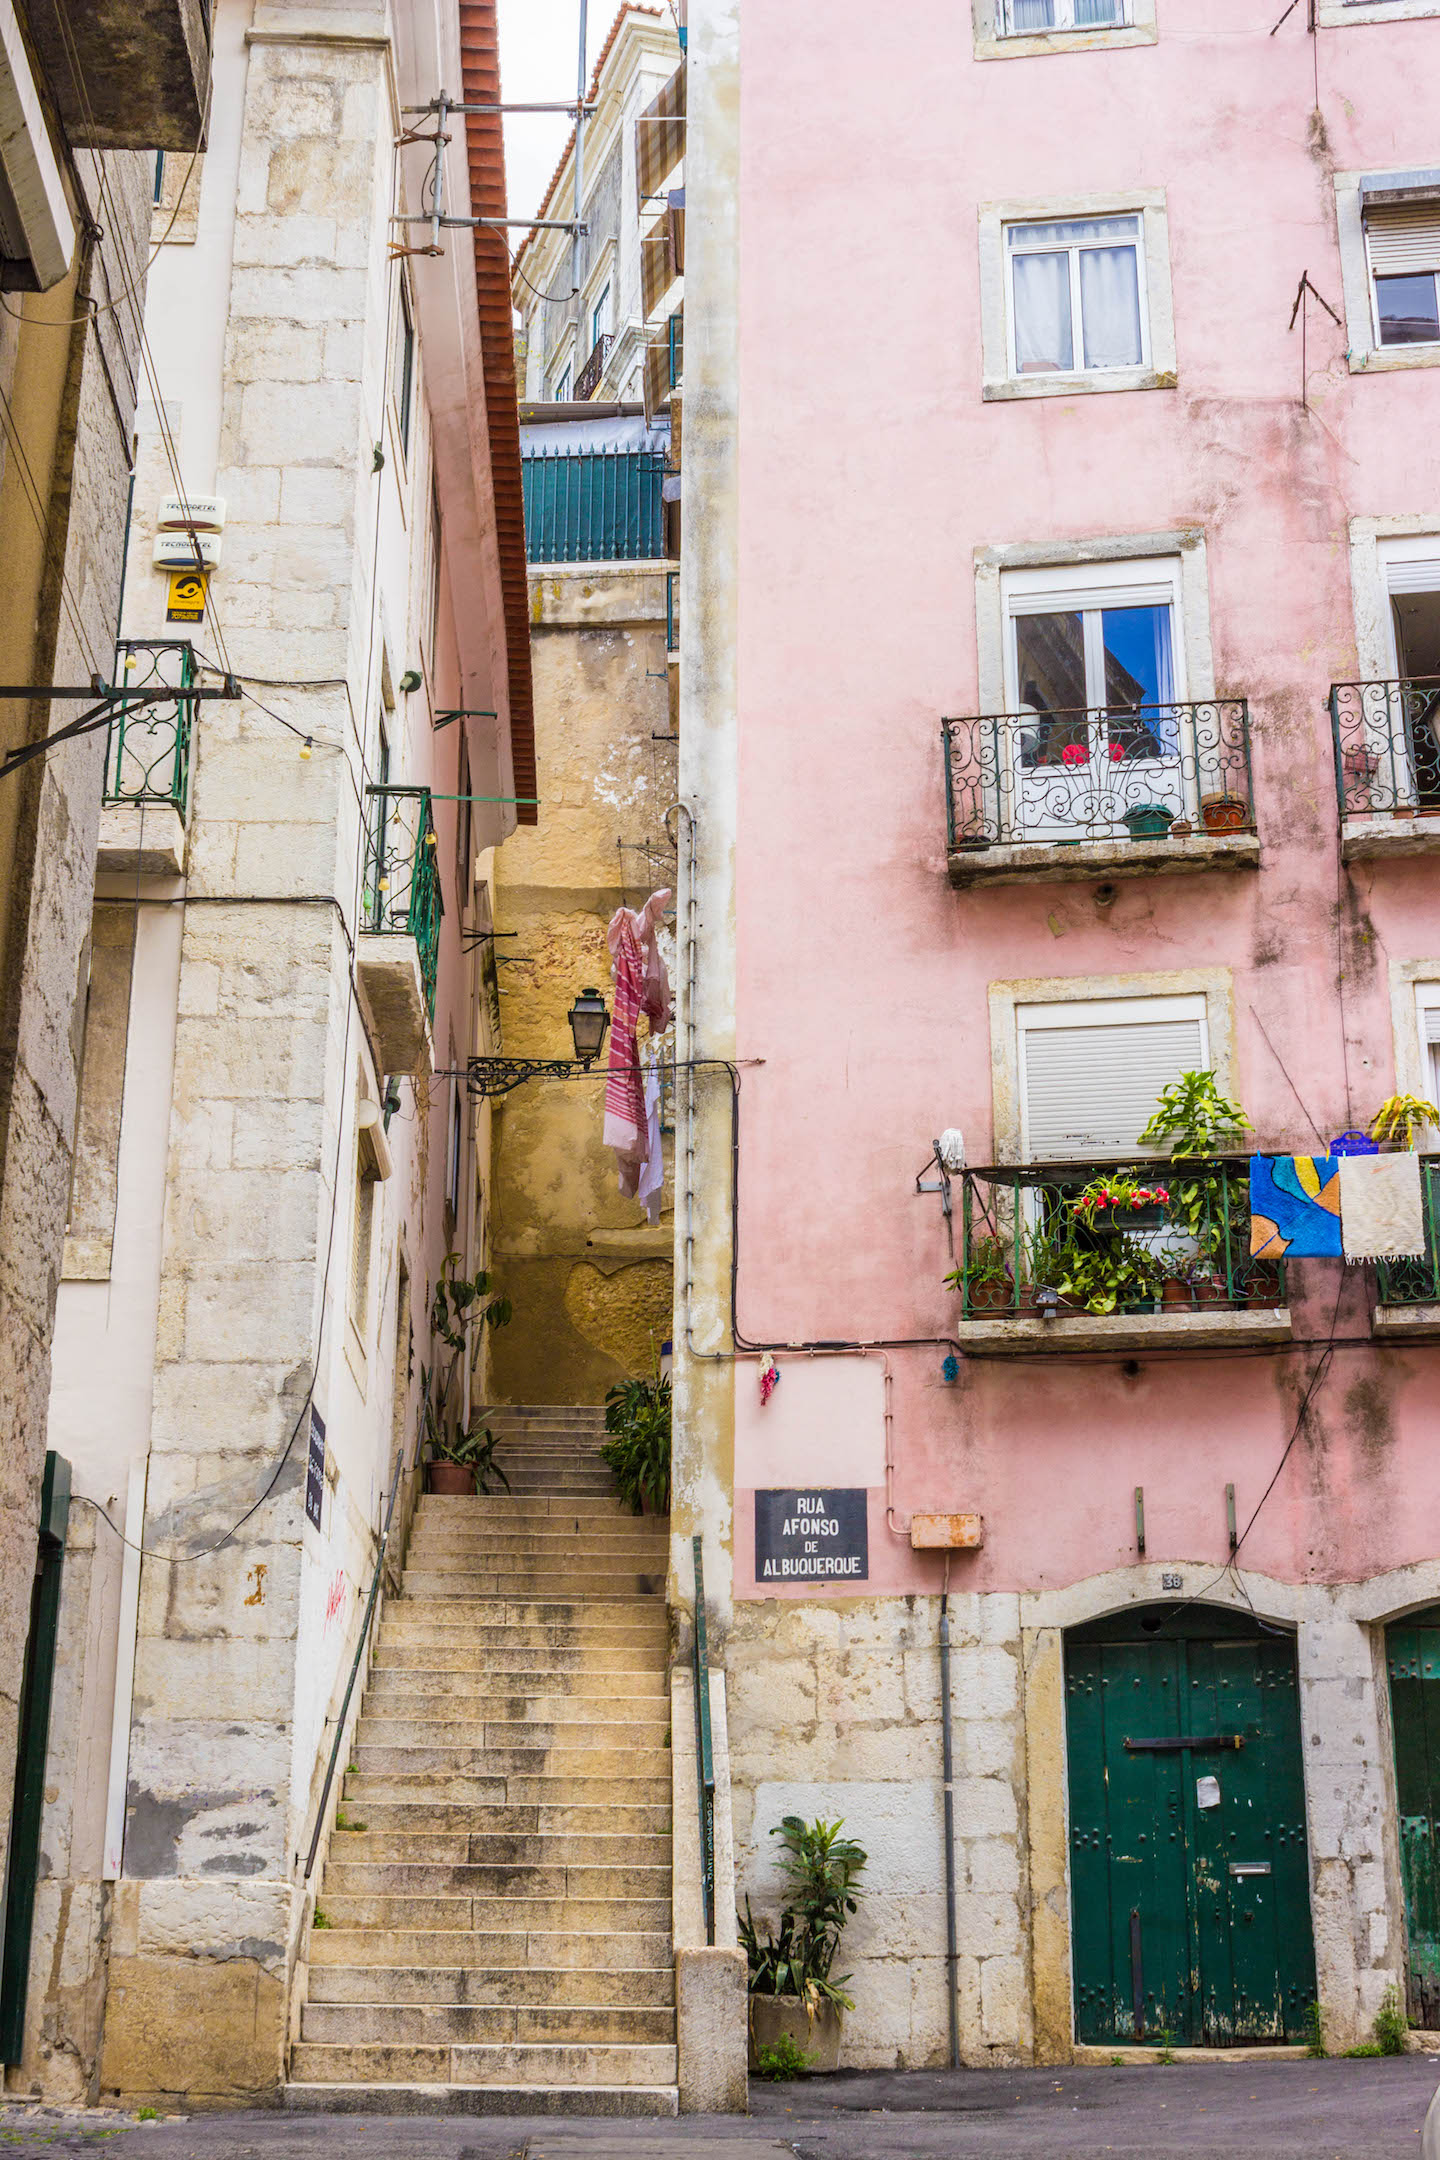 The colorful streets of Lisbon's medieval area